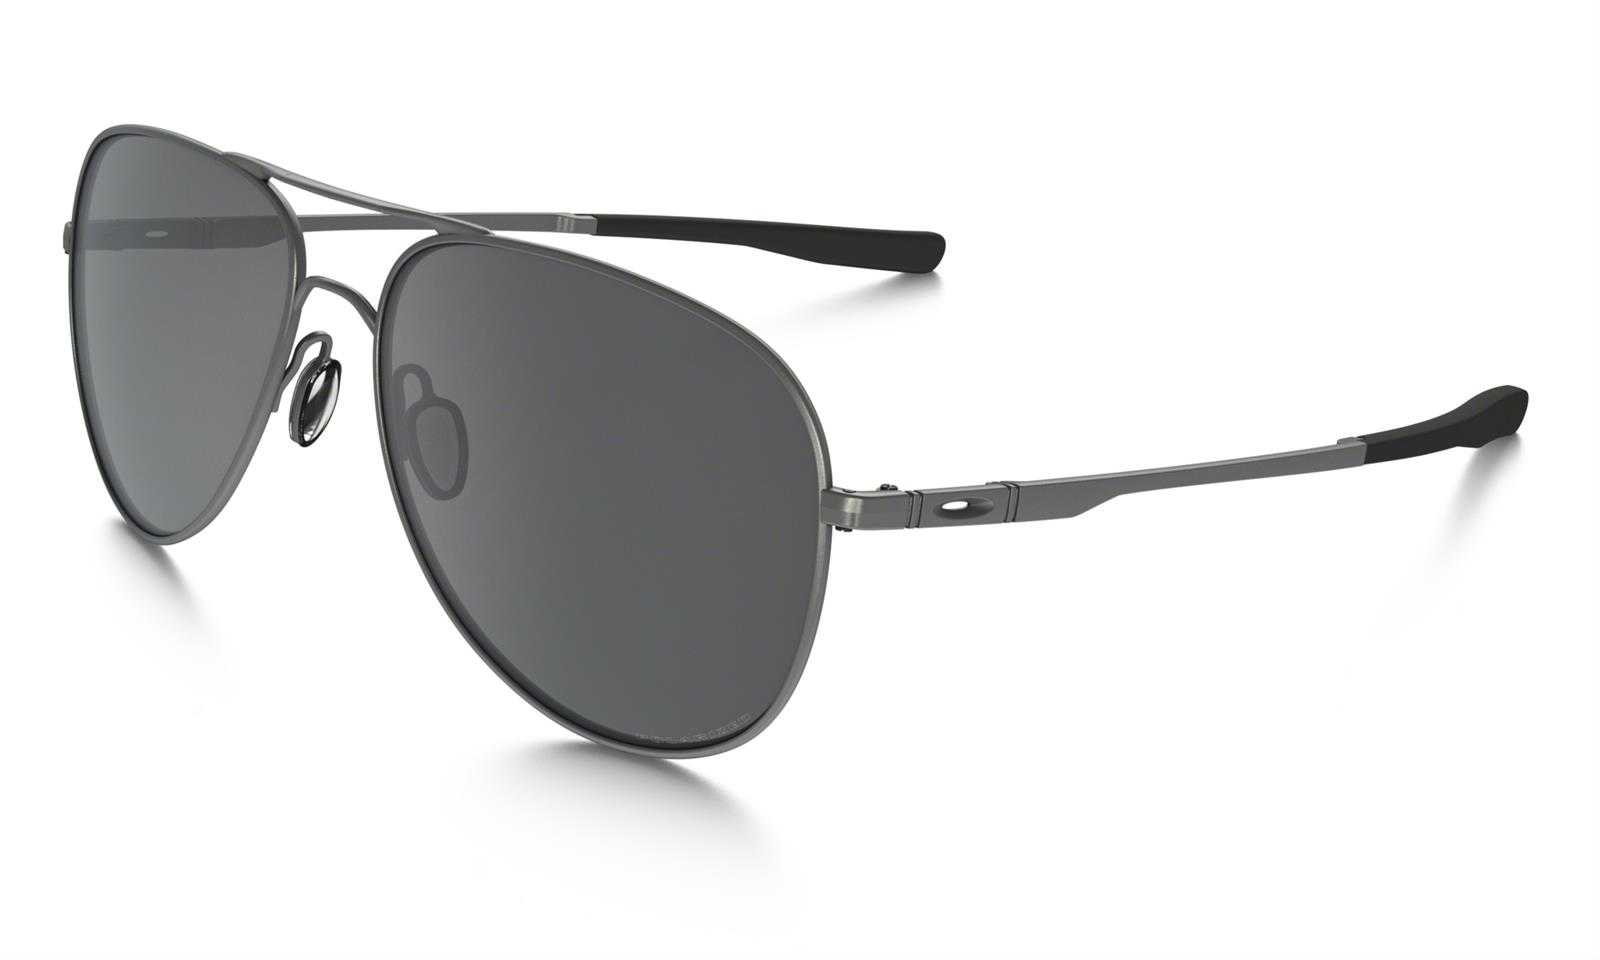 c632be13307 Oakley Elmont Sunglasses OO4119-0660 - Free Shipping on Orders Over  99 at  Summit Racing